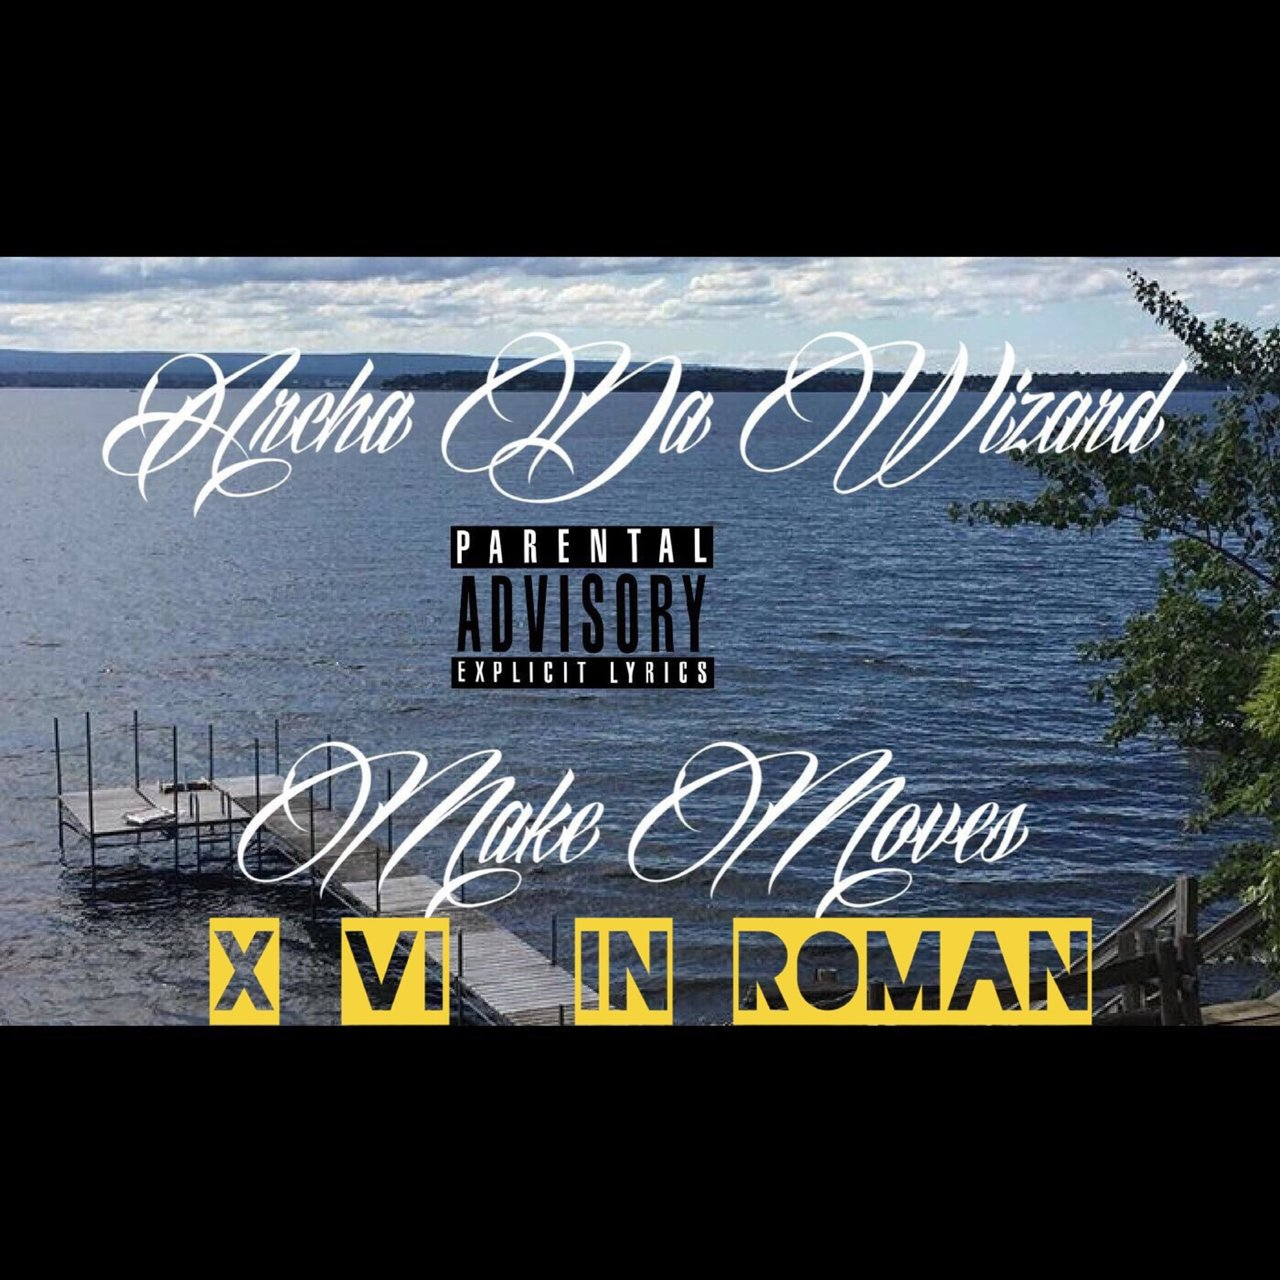 Make Moves (XVI in Roman)